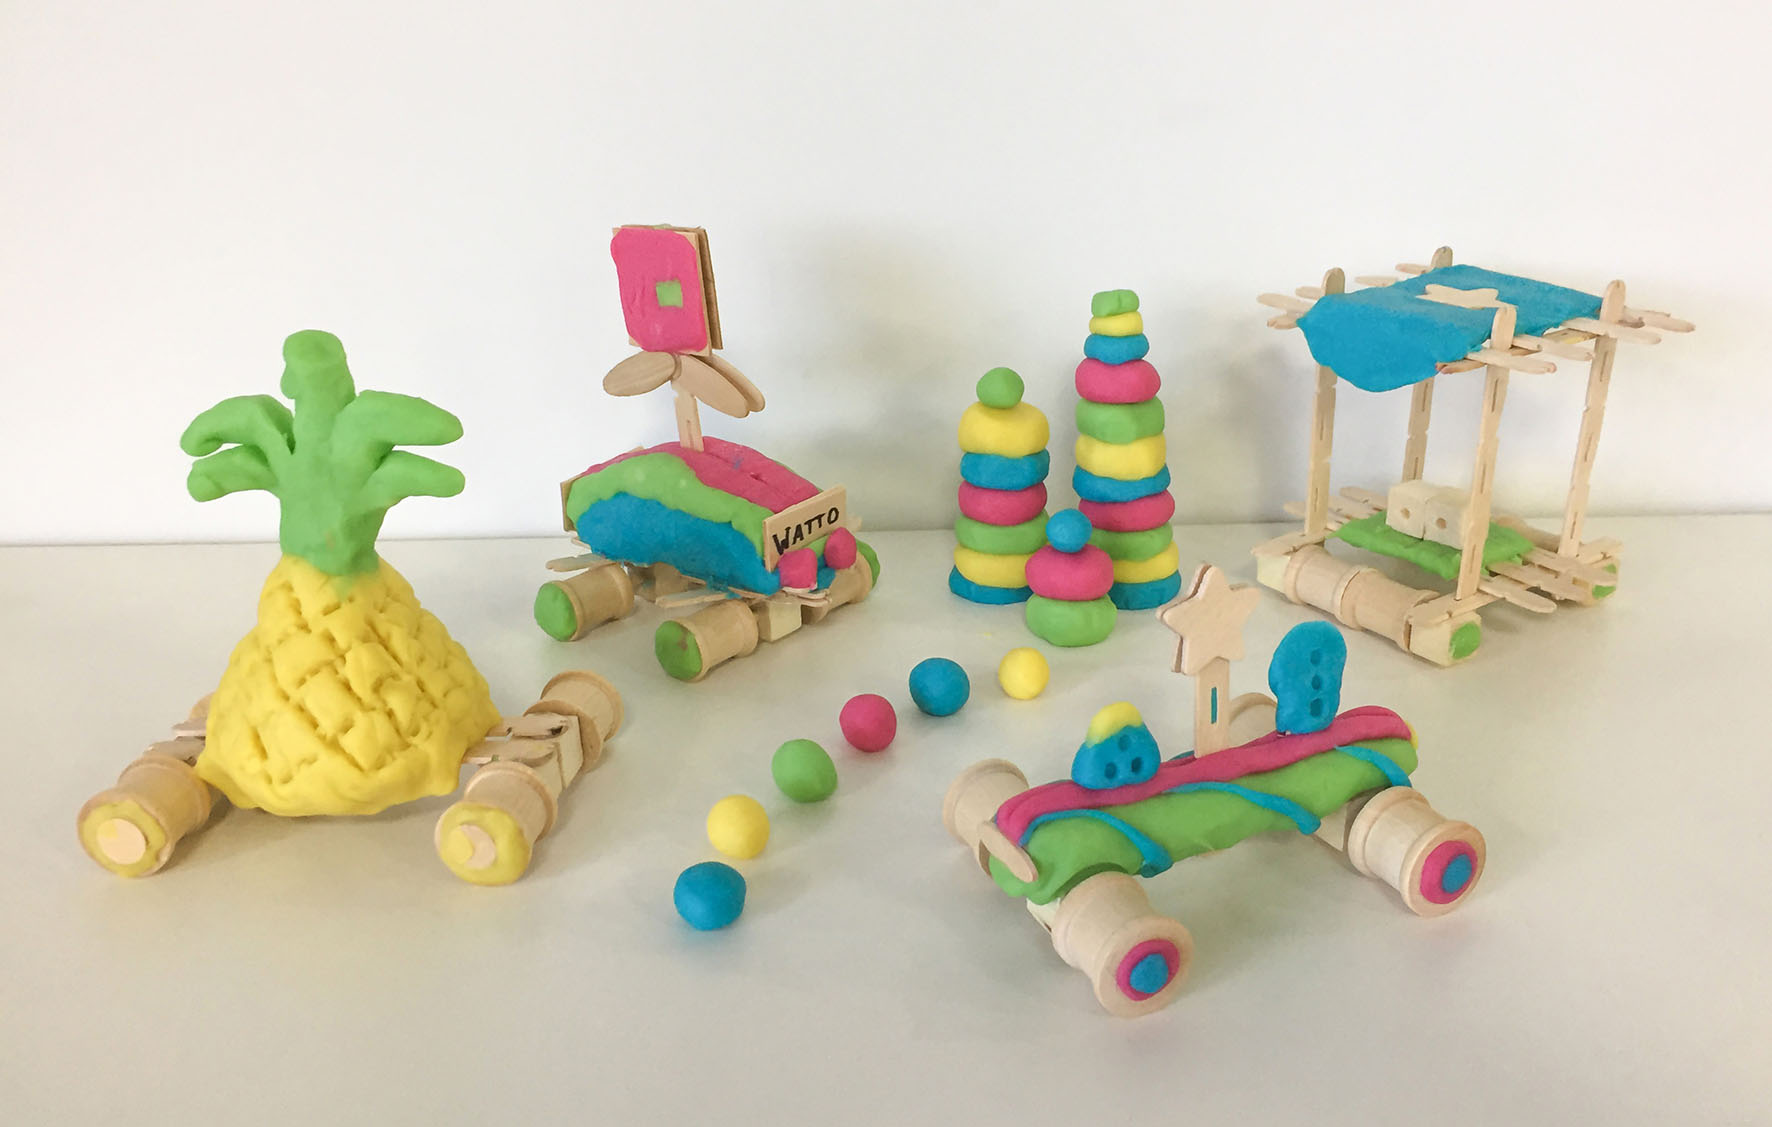 Playdough - A Fabulous STEM Learning Opportunity